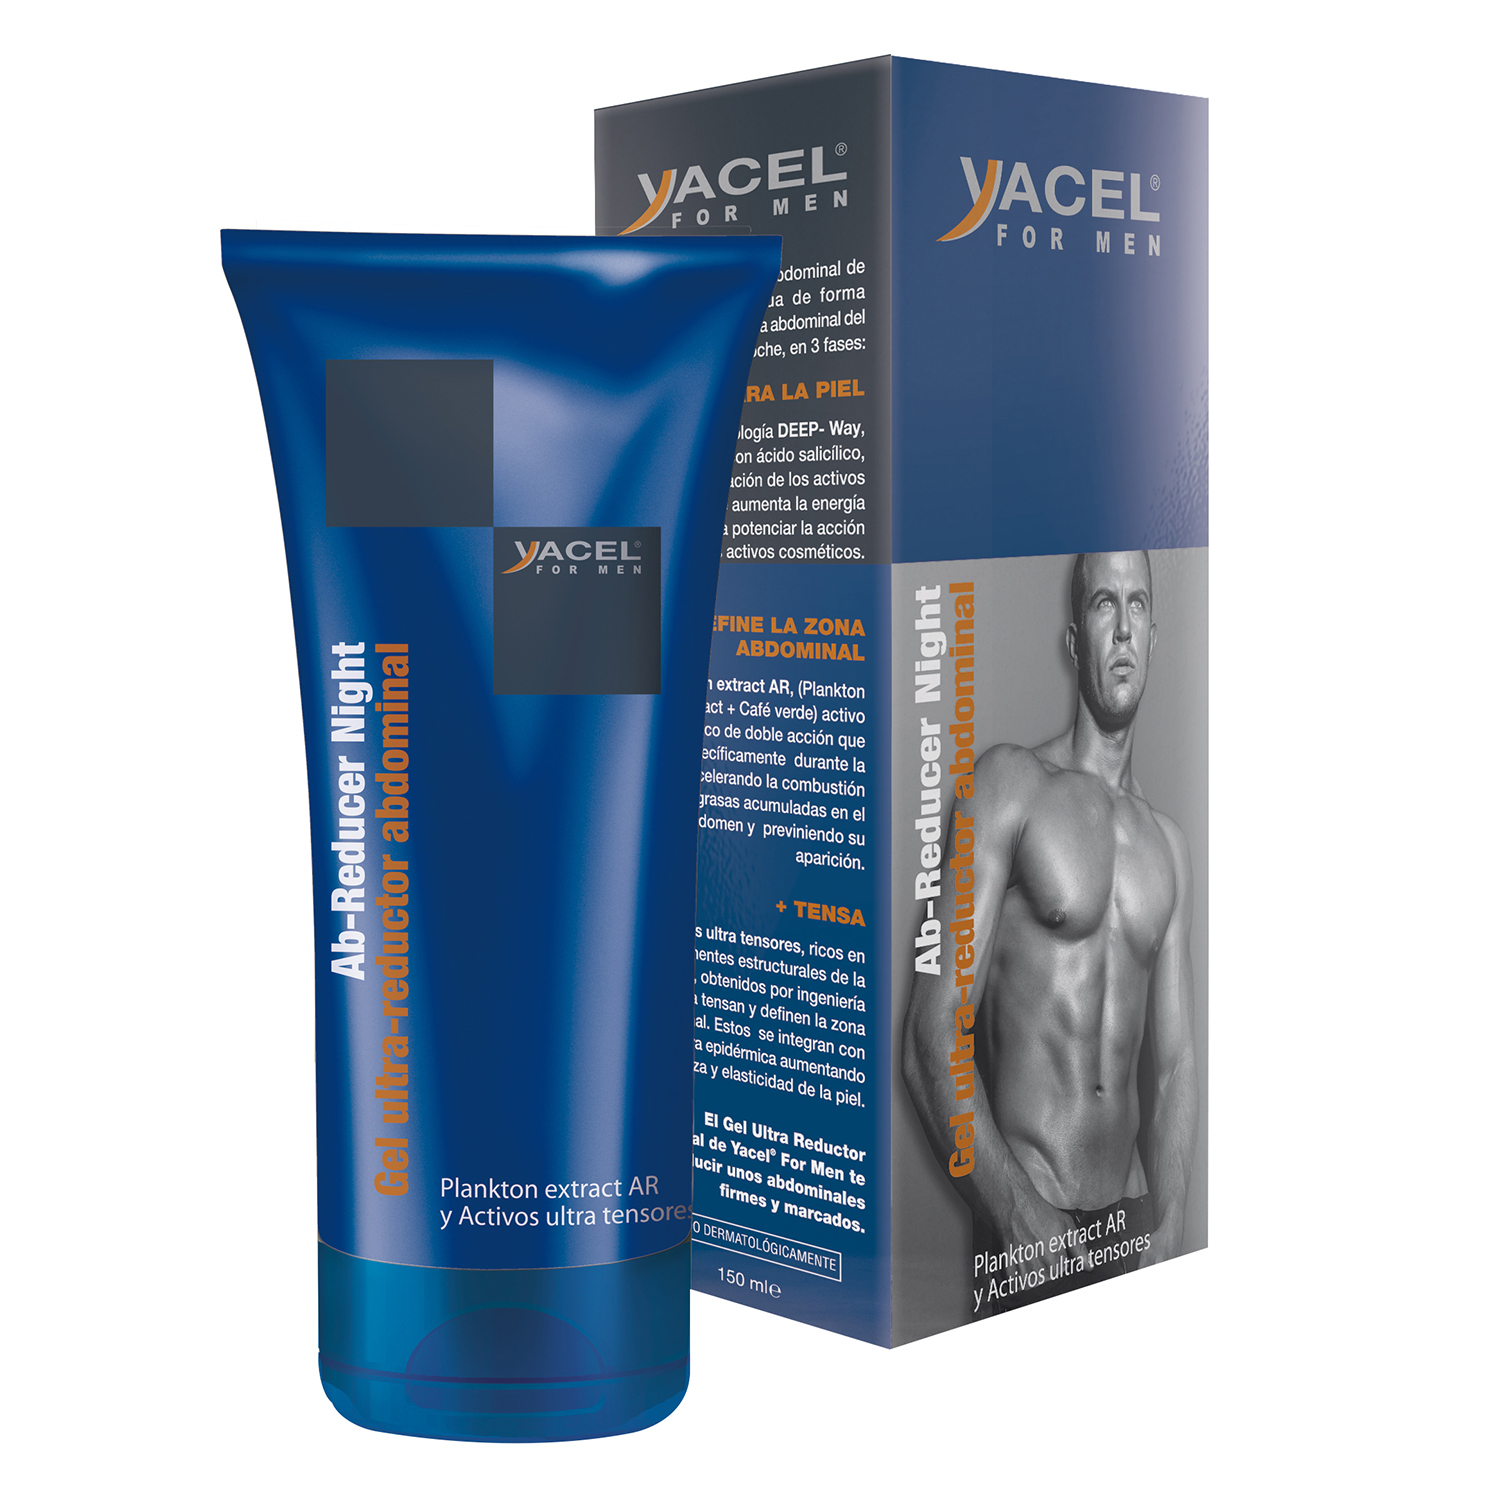 Gel utra-reductor abdominal noche men Yacel 150 ml.